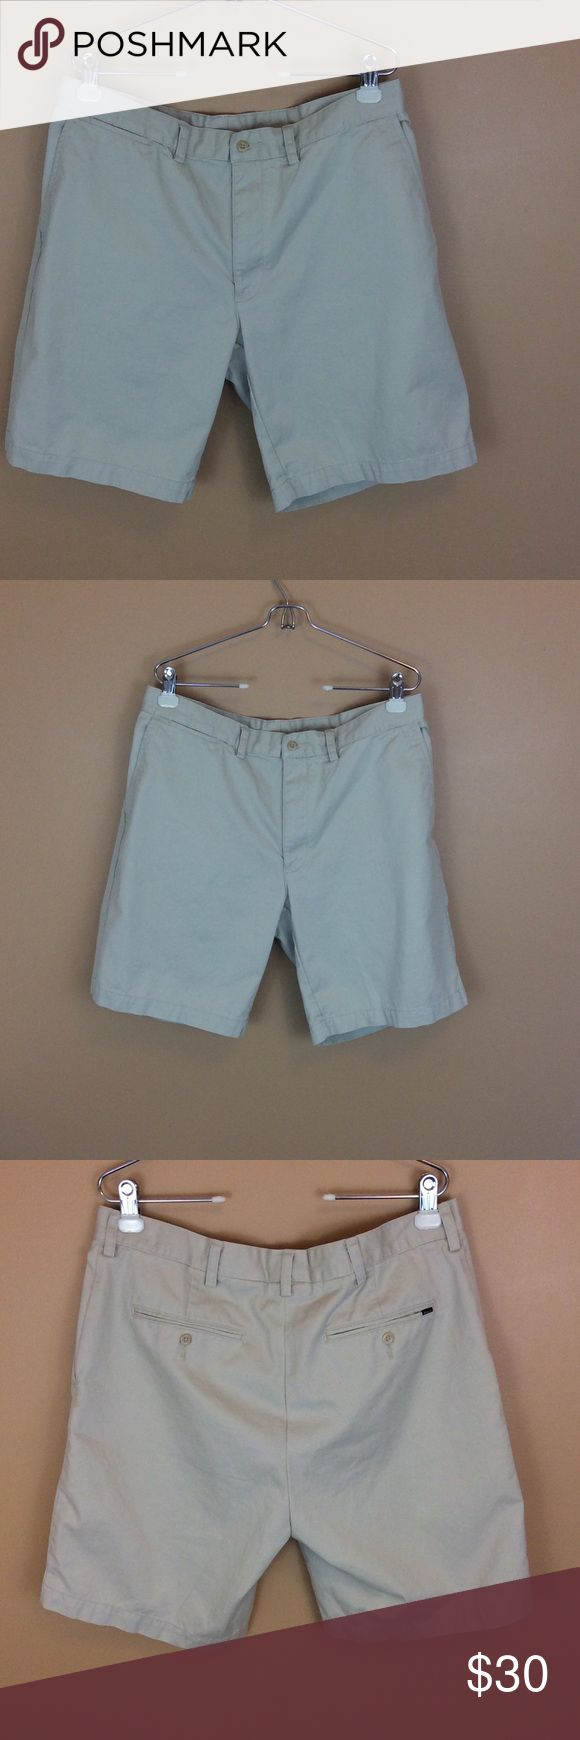 """Polo Ralph Lauren Classic Khaki Shorts Size 38 For sale is this great pair of classic khaki Polo shorts. Light tan with pockets, flat front, 100% cotton  Men's Size 38  Rise 11""""  Inseam 9""""  Waist 36""""  THIS ITEM HAS BEEN ALTERED. PLEASE SEE MEASUREMENTS. Polo by Ralph Lauren Shorts Flat Front"""